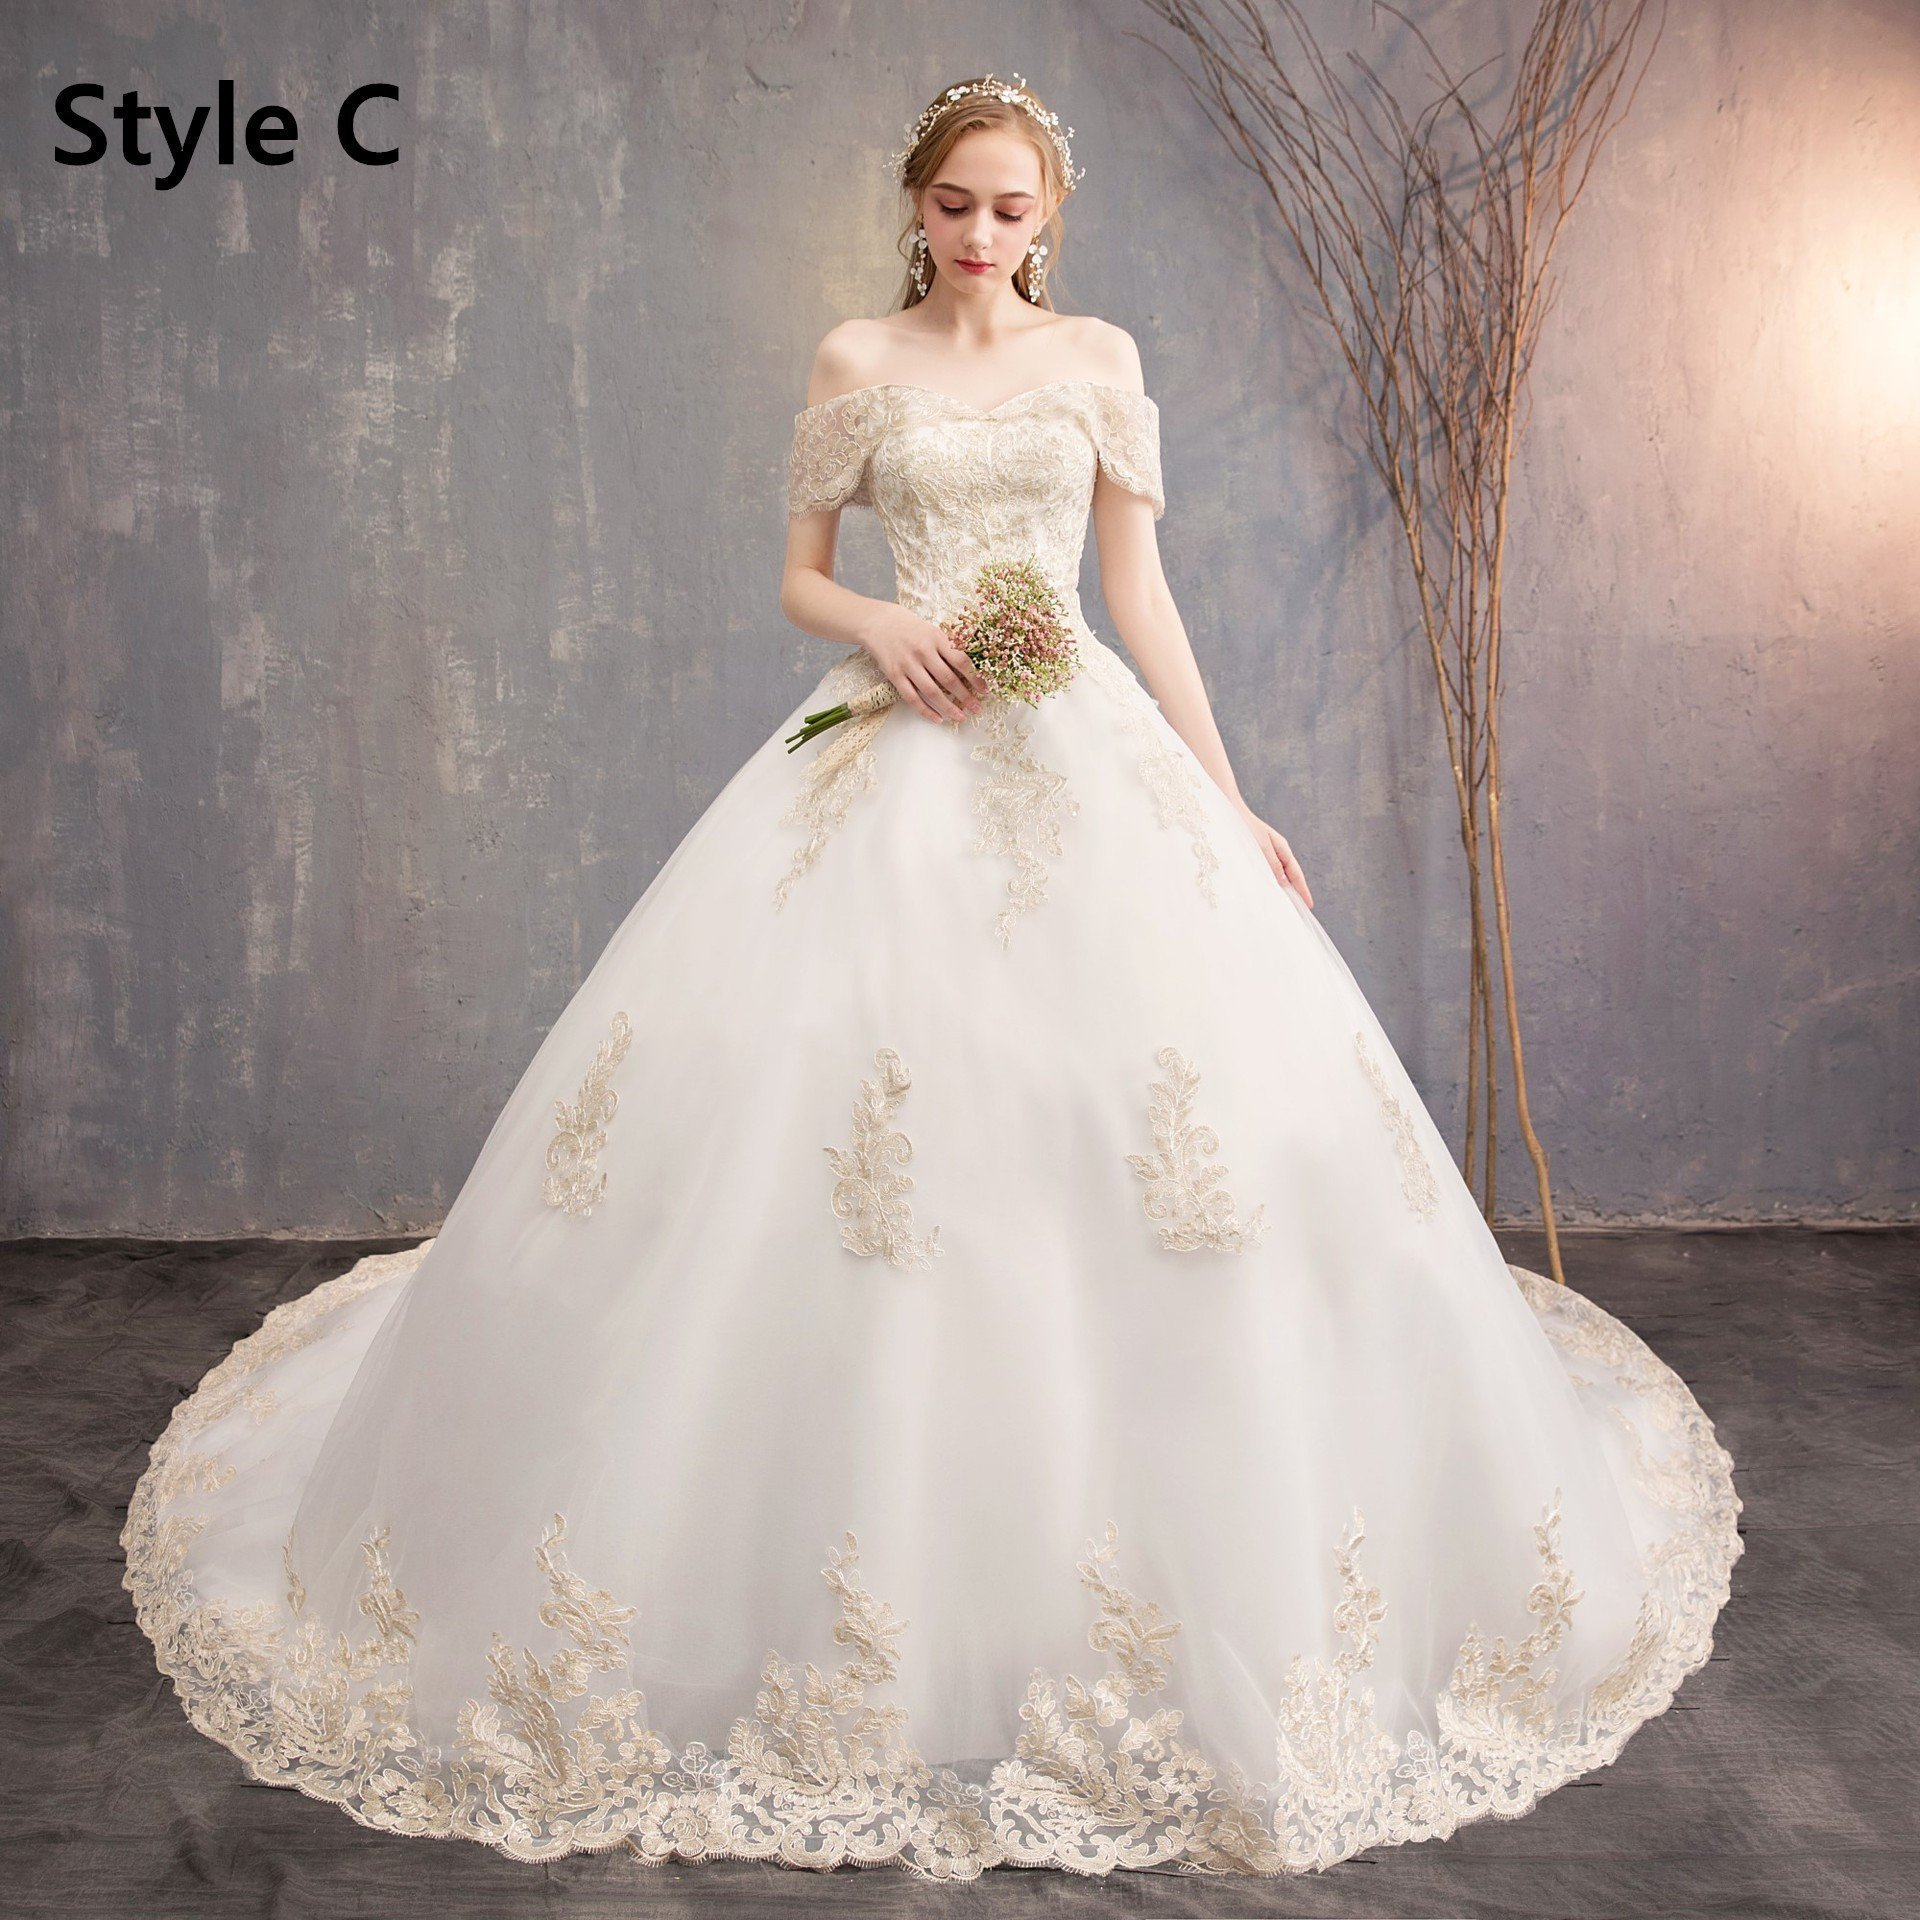 Best Wedding Dresses Lace Dresses Deep V Lace Dress Wedding Packages Umembeso Outfits For Couples Christian Wedding Dress White Cocktail Dress For Wedding Semi Formal Wedding Attire Women